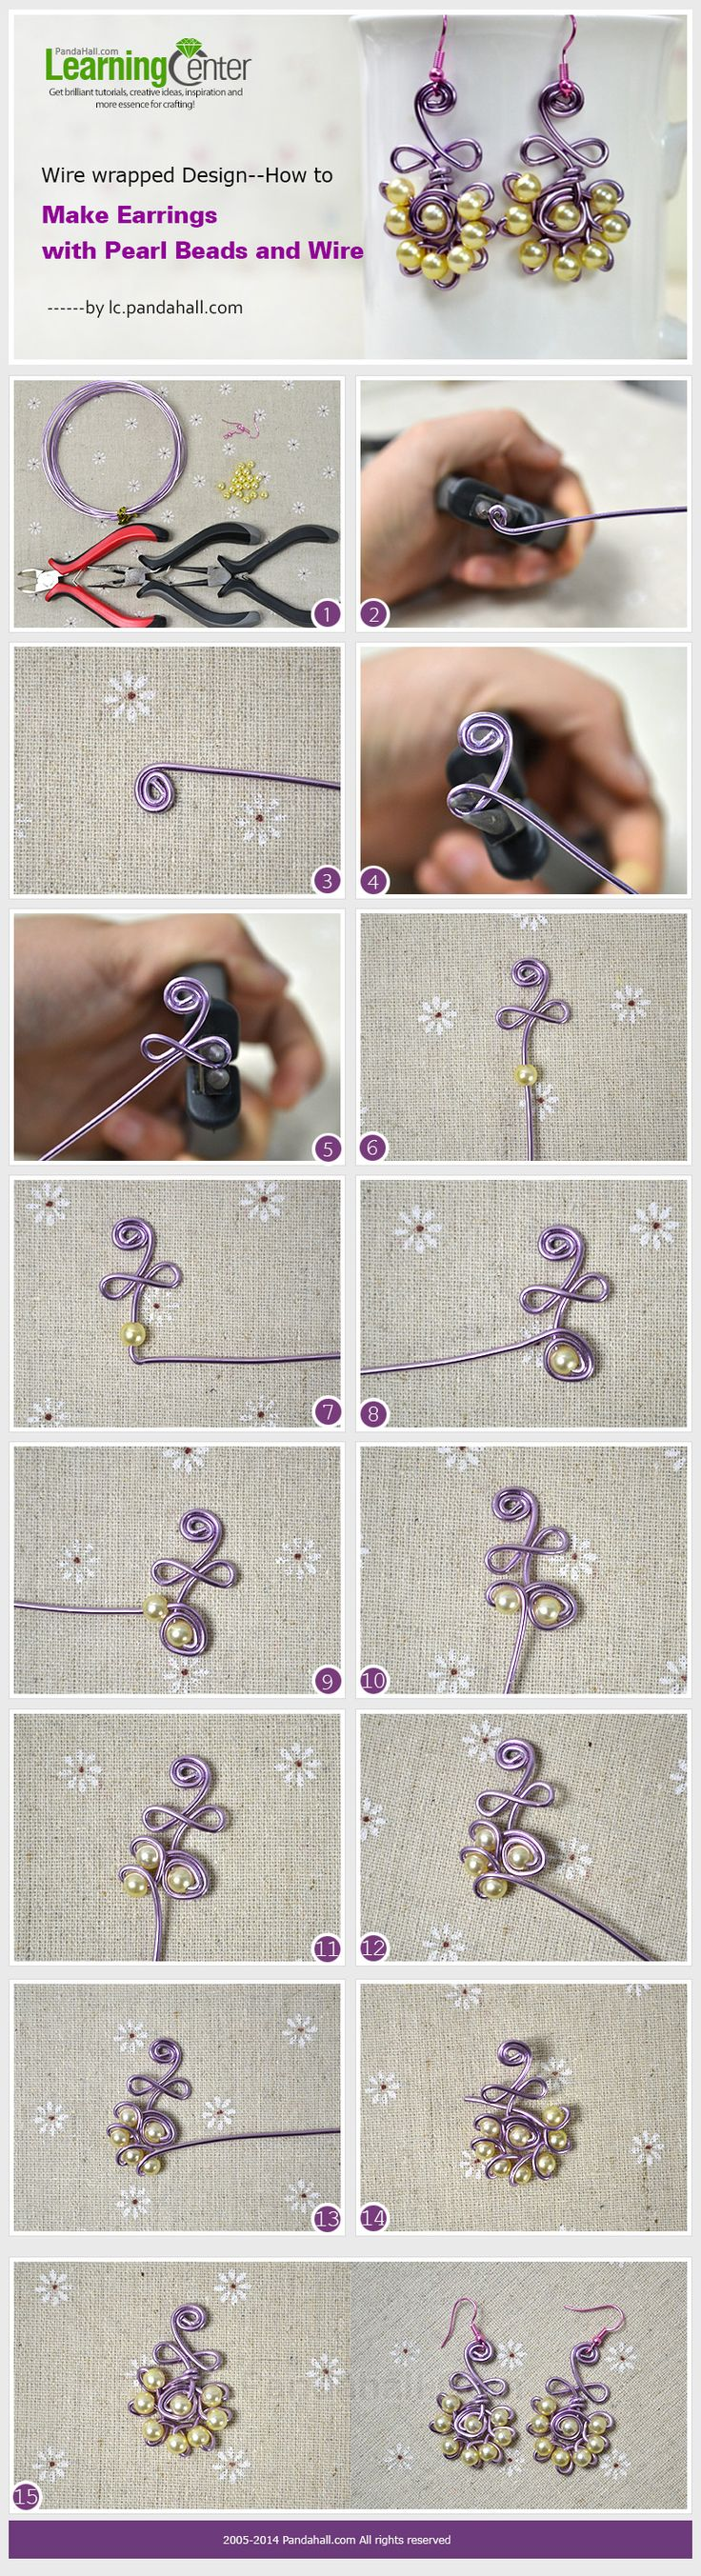 How to Make Earrings with Pearl Beads and Wire?Click the Photo for More Information